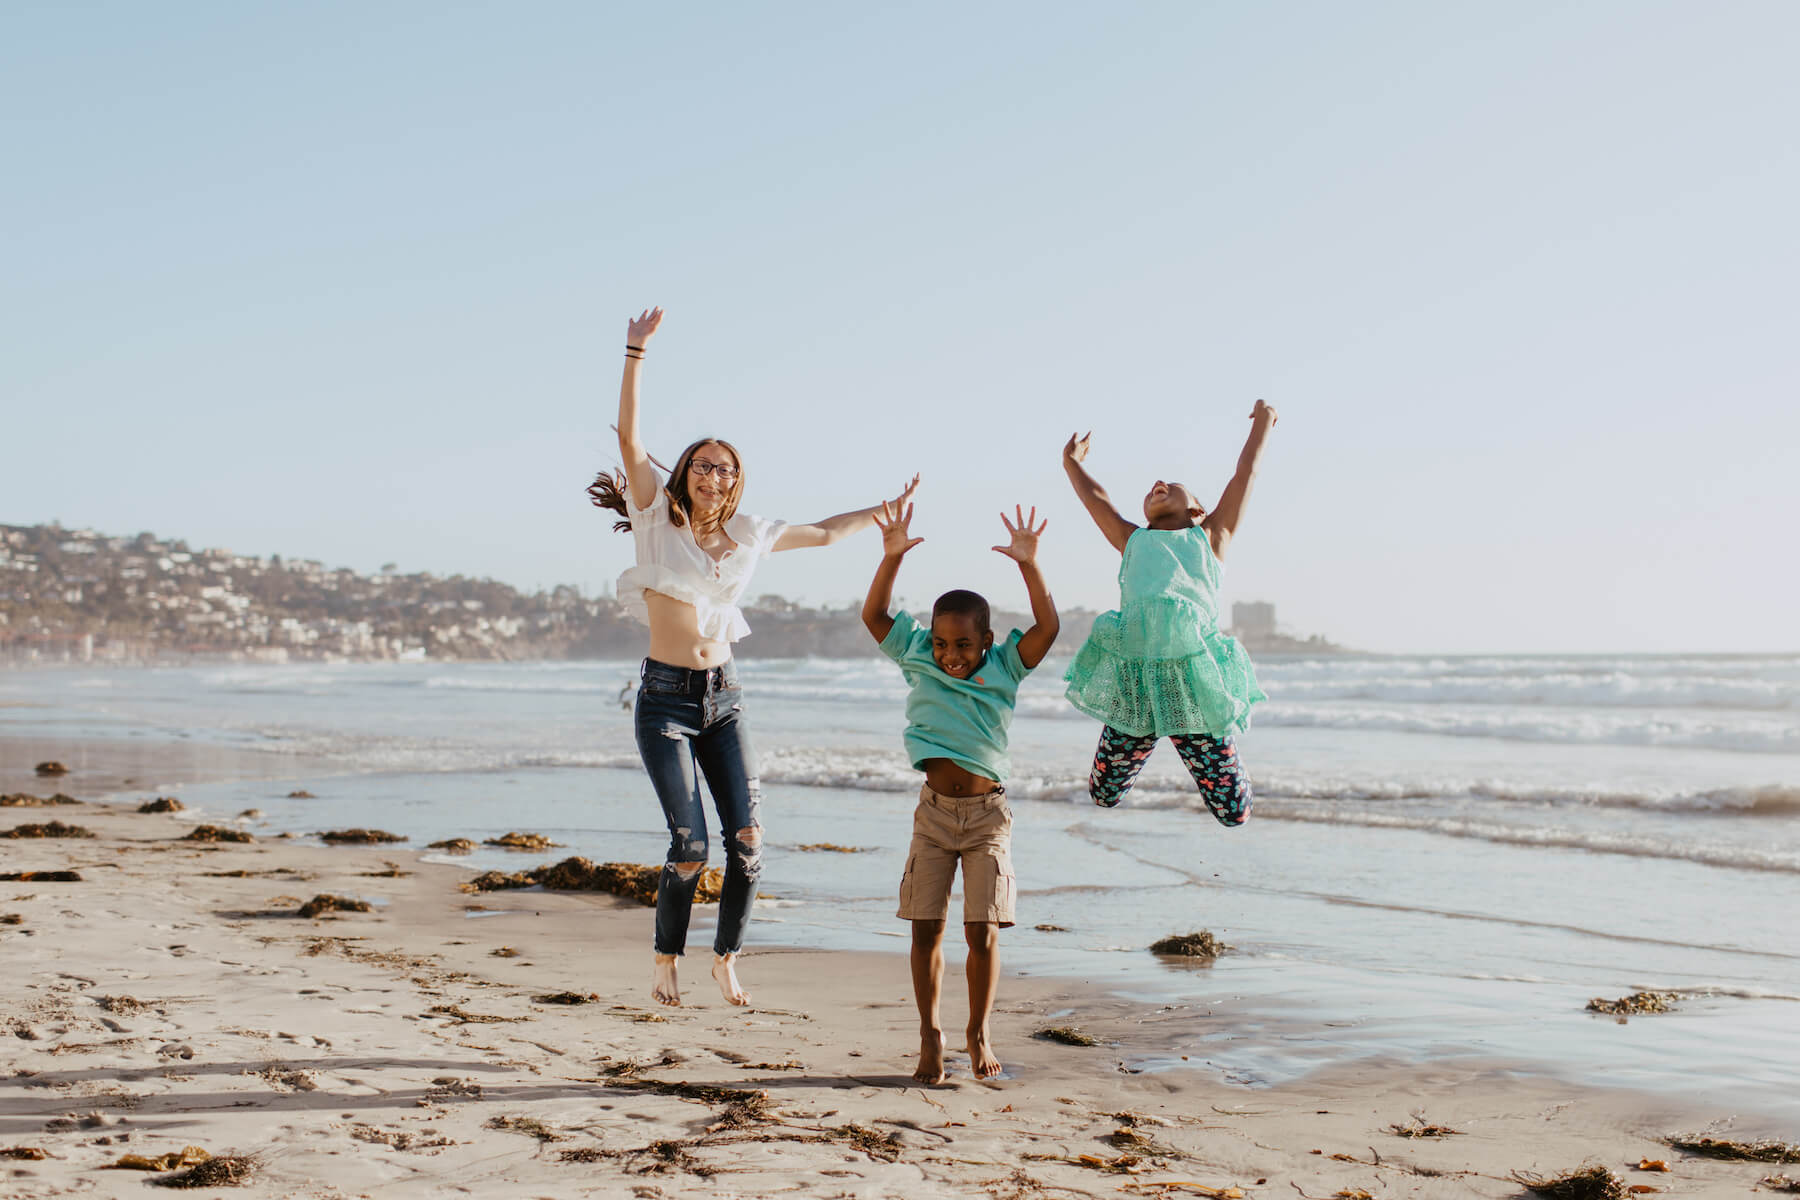 3 kids jumping on the beach in San Diego, California